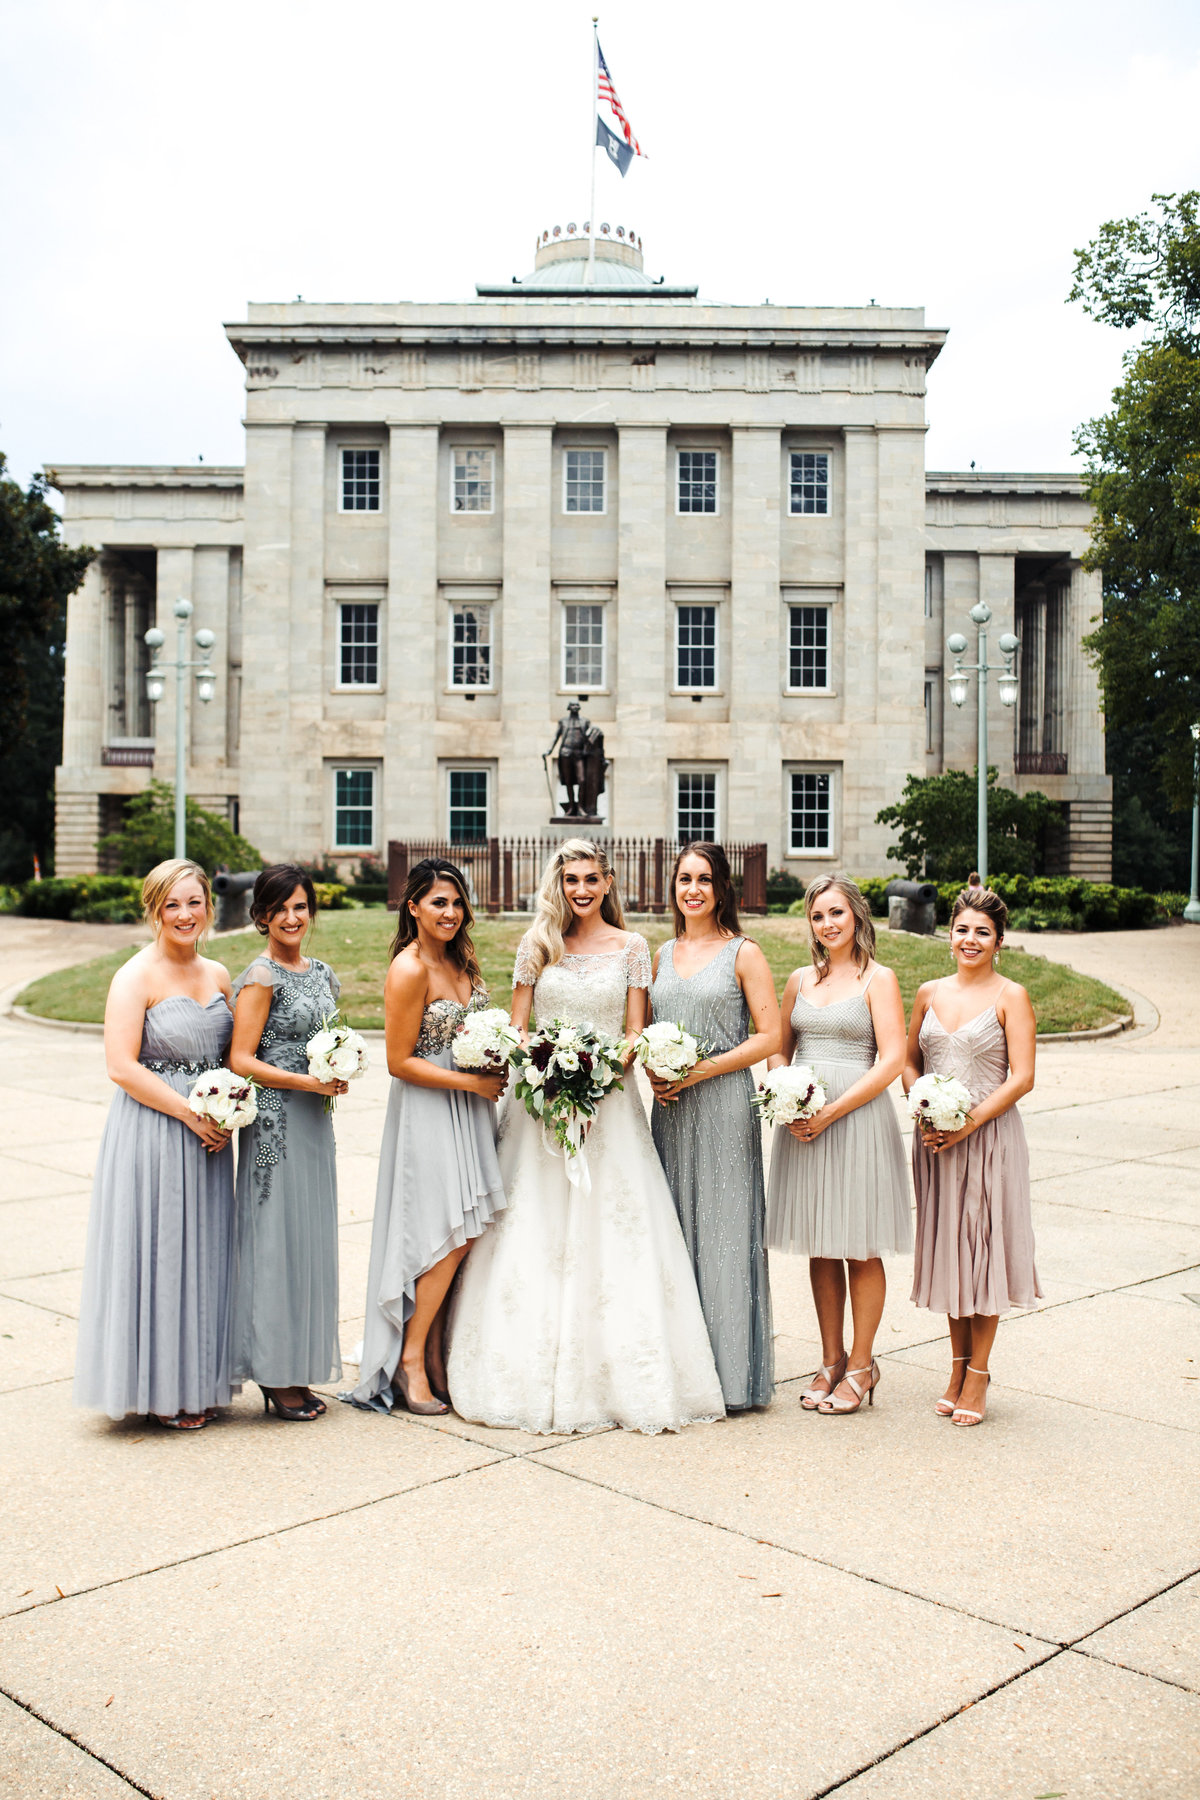 Charlotte wedding Photography Rlaigh Capital 5